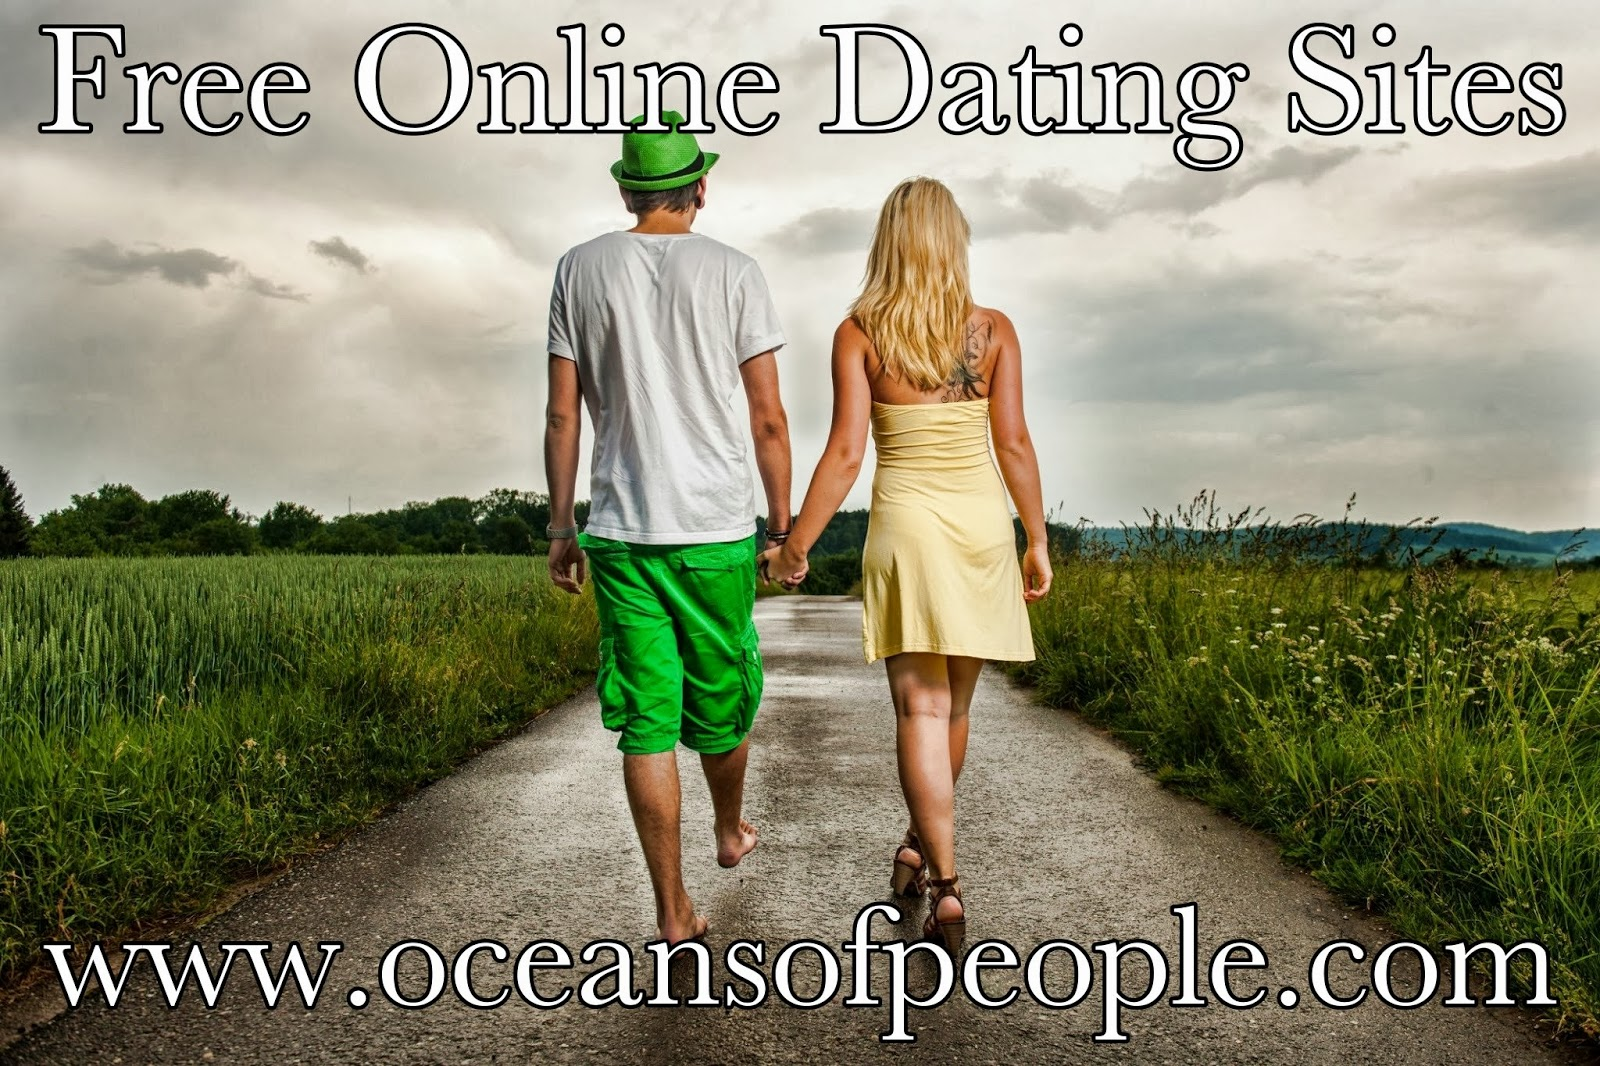 Free dating service online